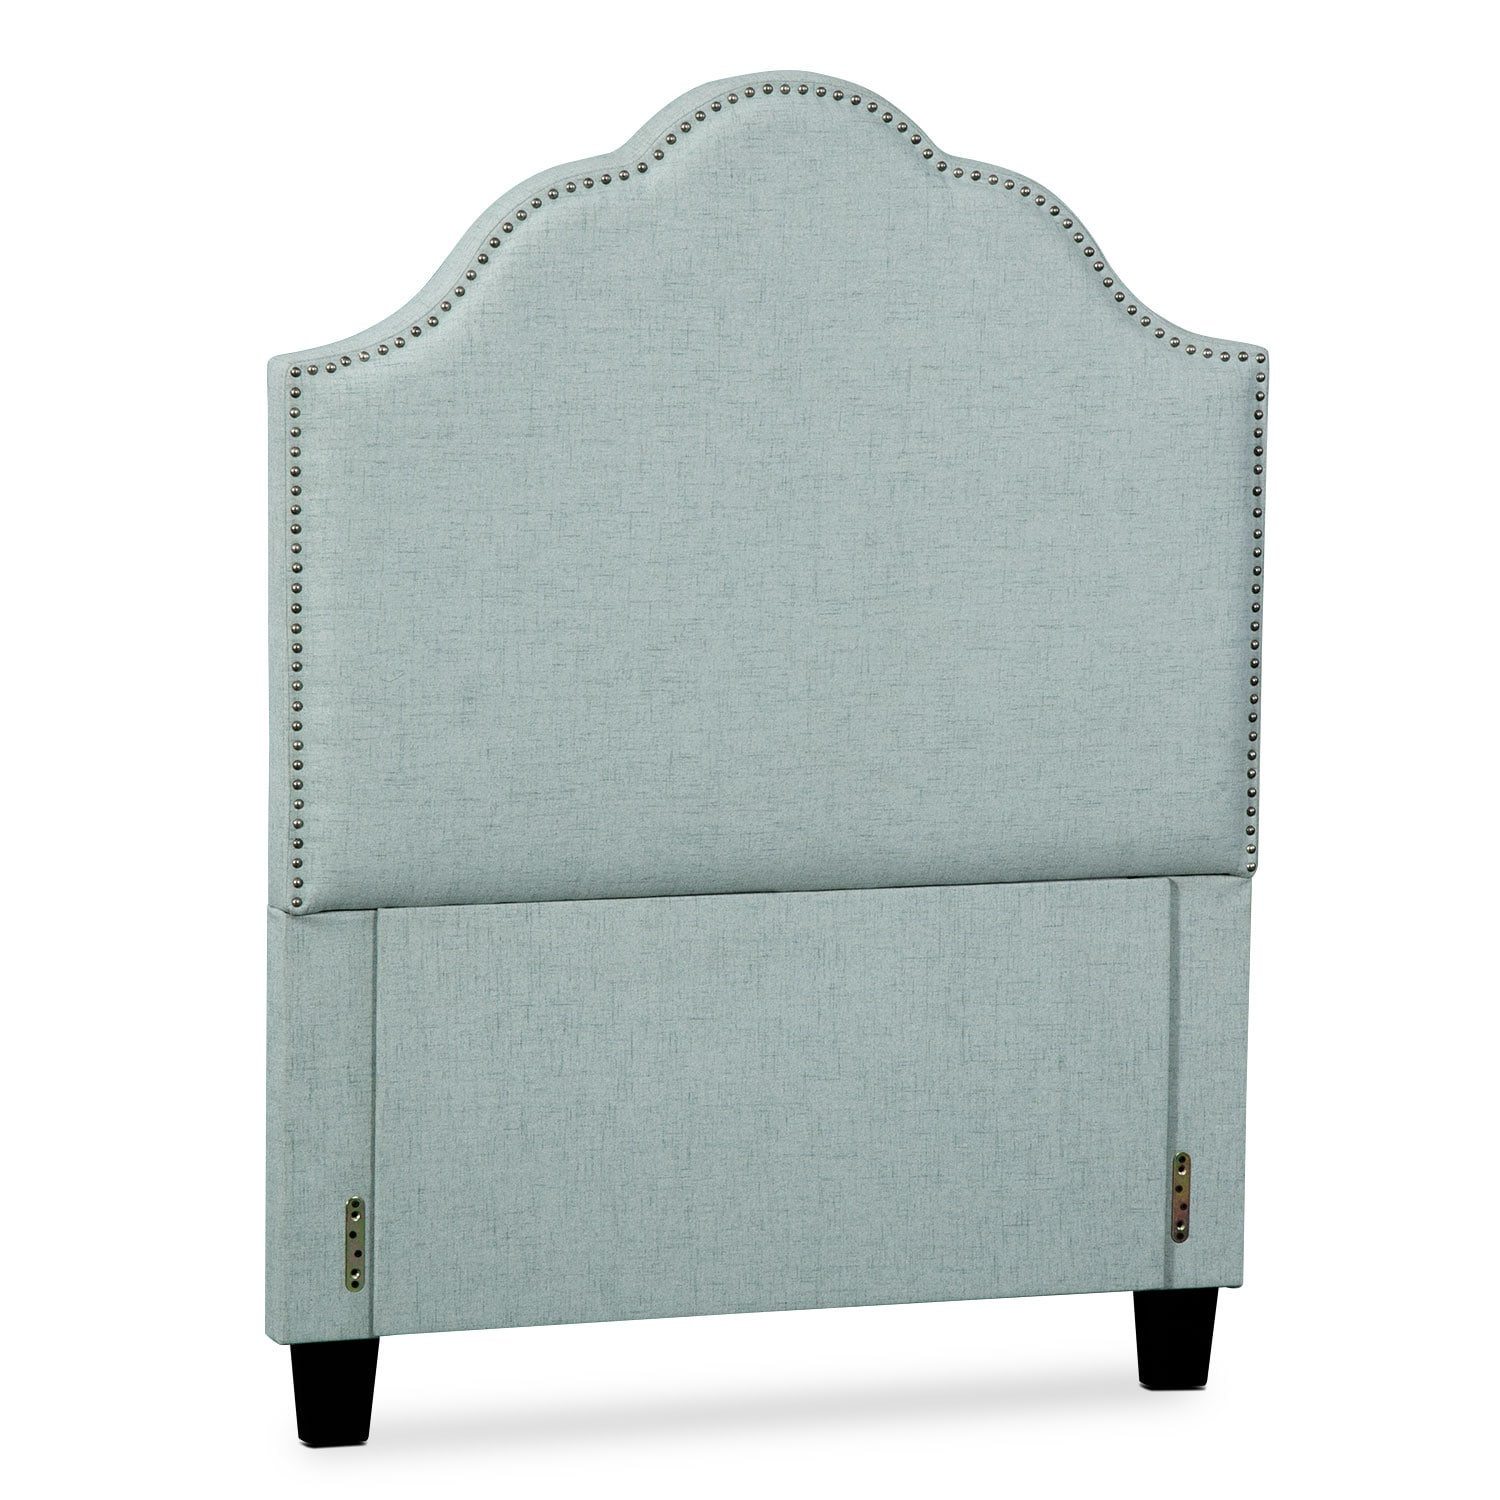 Bedroom Furniture - Maya Full Upholstered Headboard - Aqua